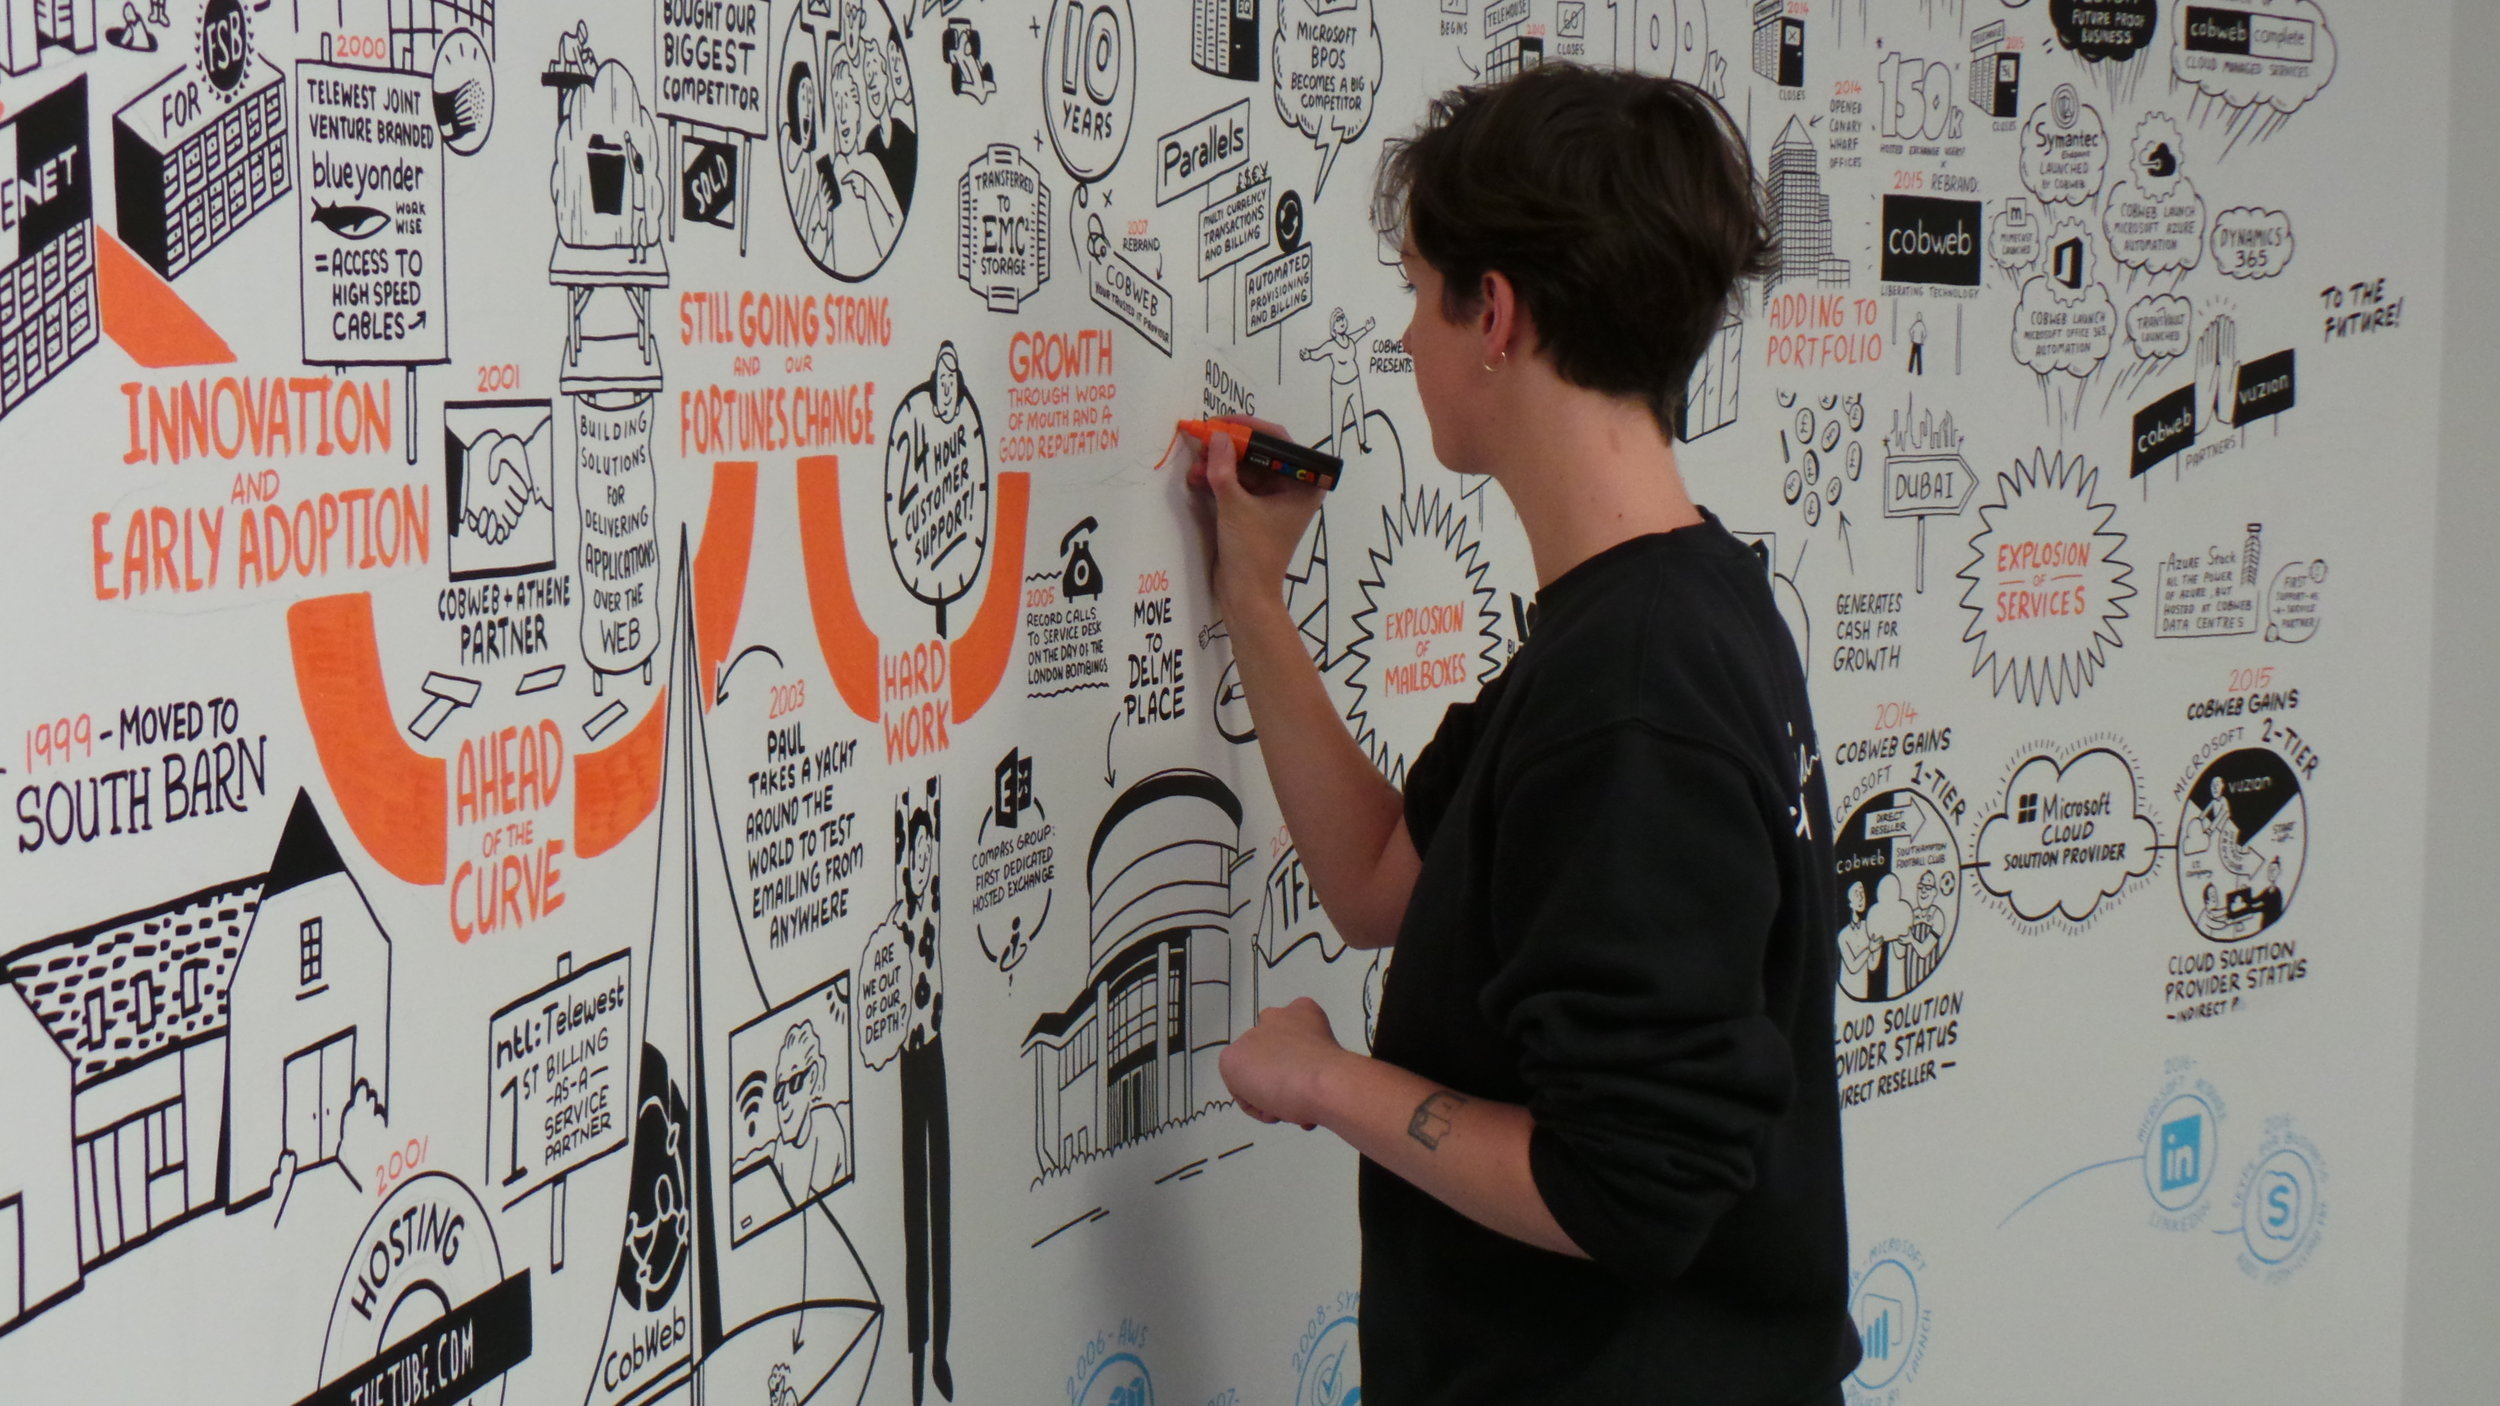 Scriberia Scribing Graphic Recording Office Mural Cobweb 3